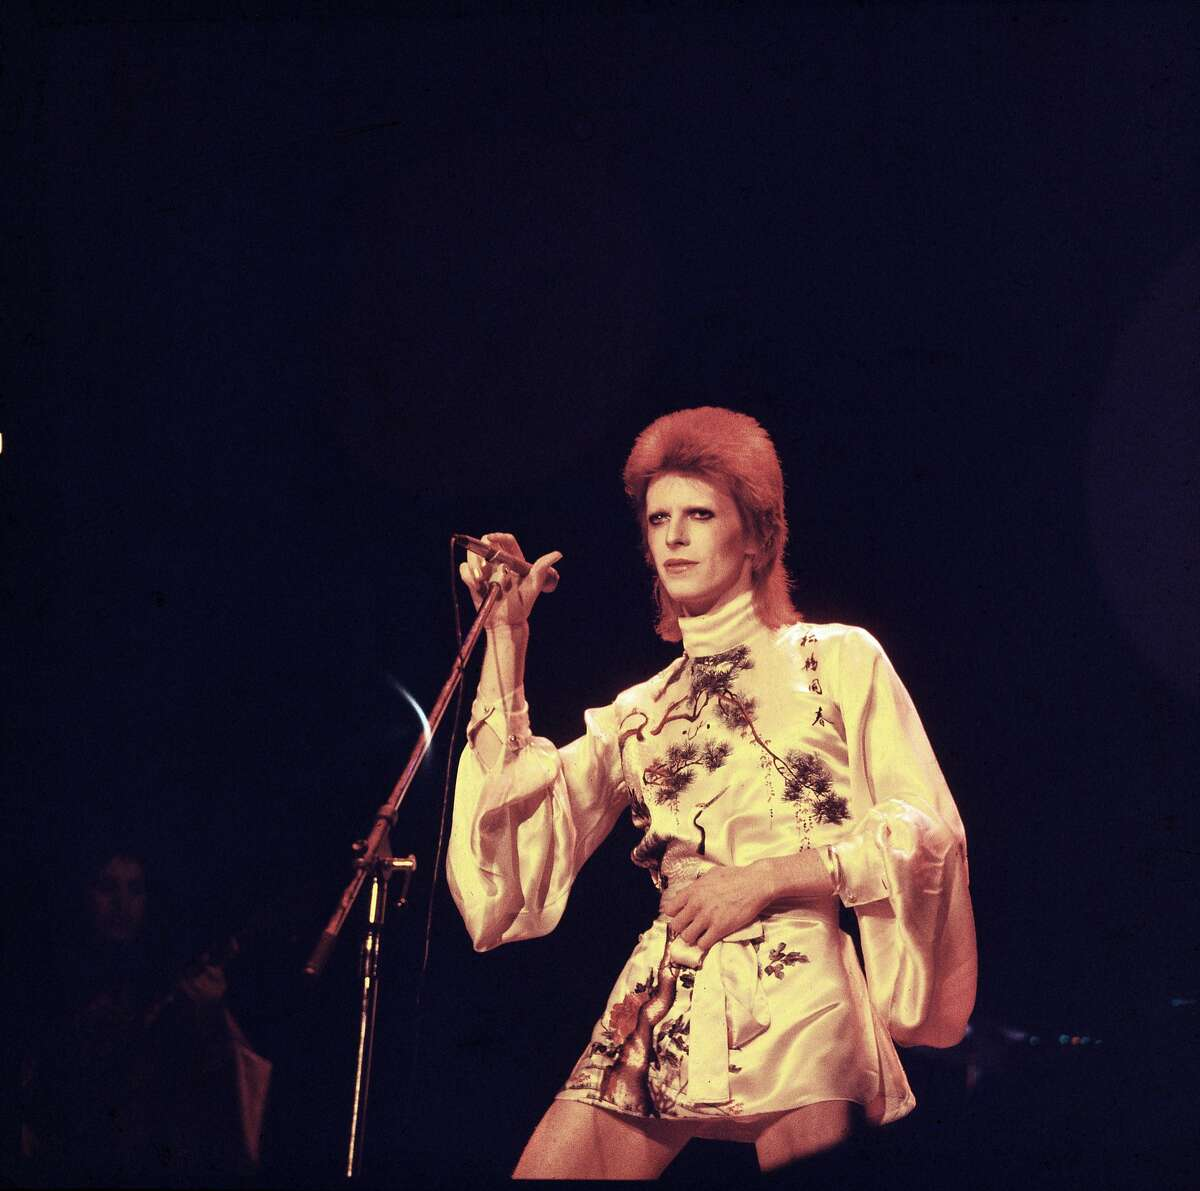 David Bowie died The 69-year-old music legend died of liver cancer in January, two days after the release of his final album,